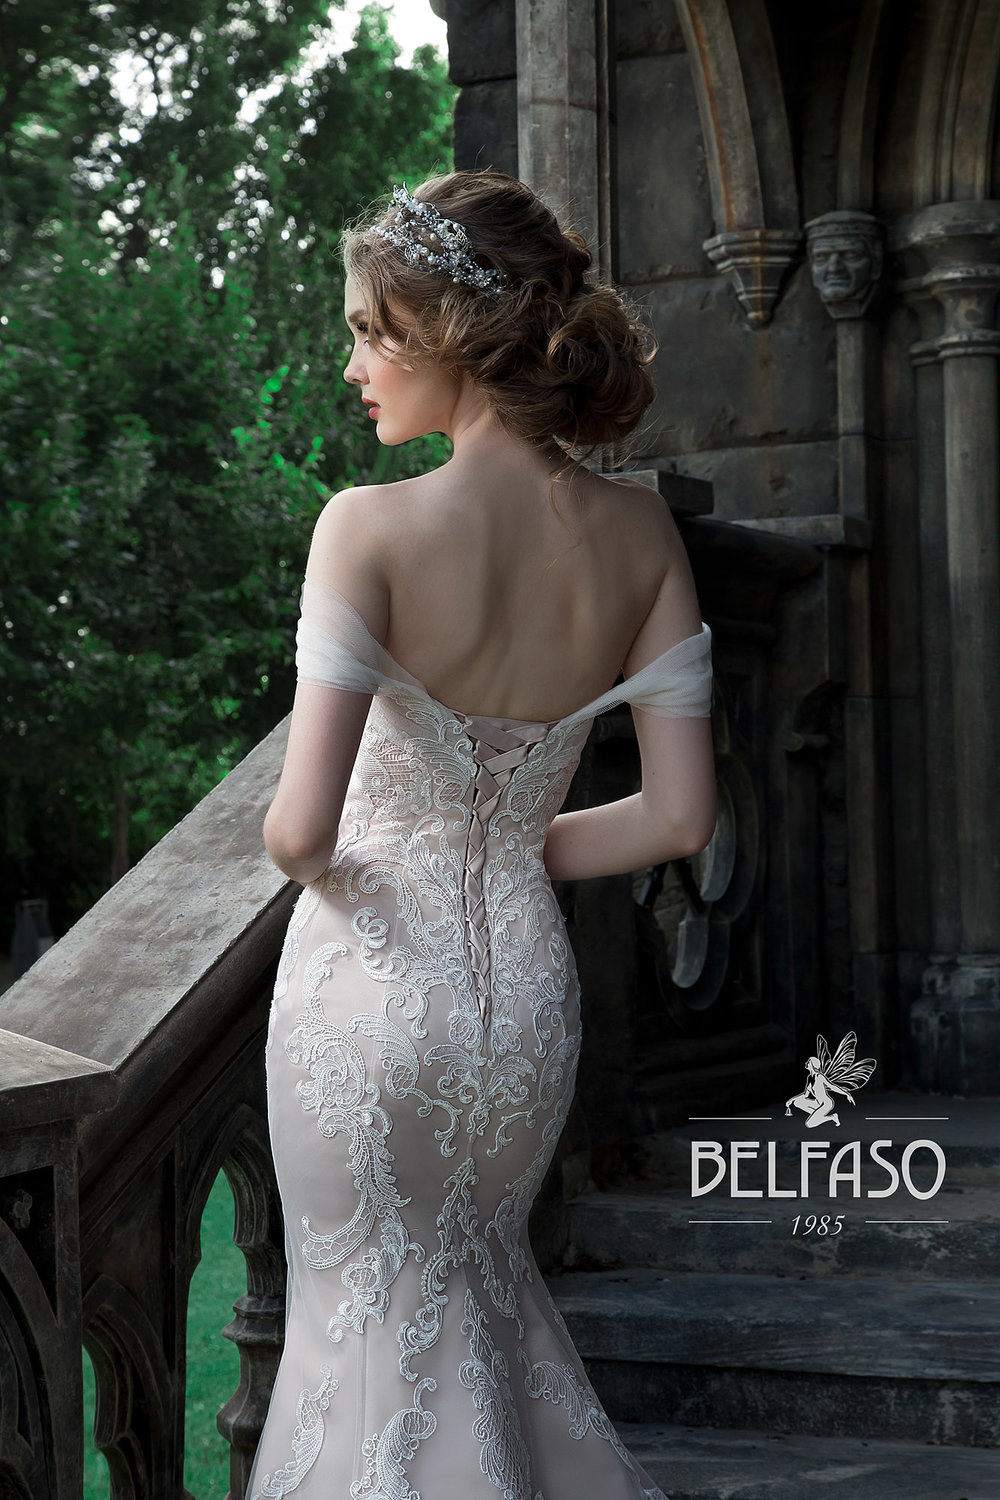 ISABELLE Dress By BELFASO